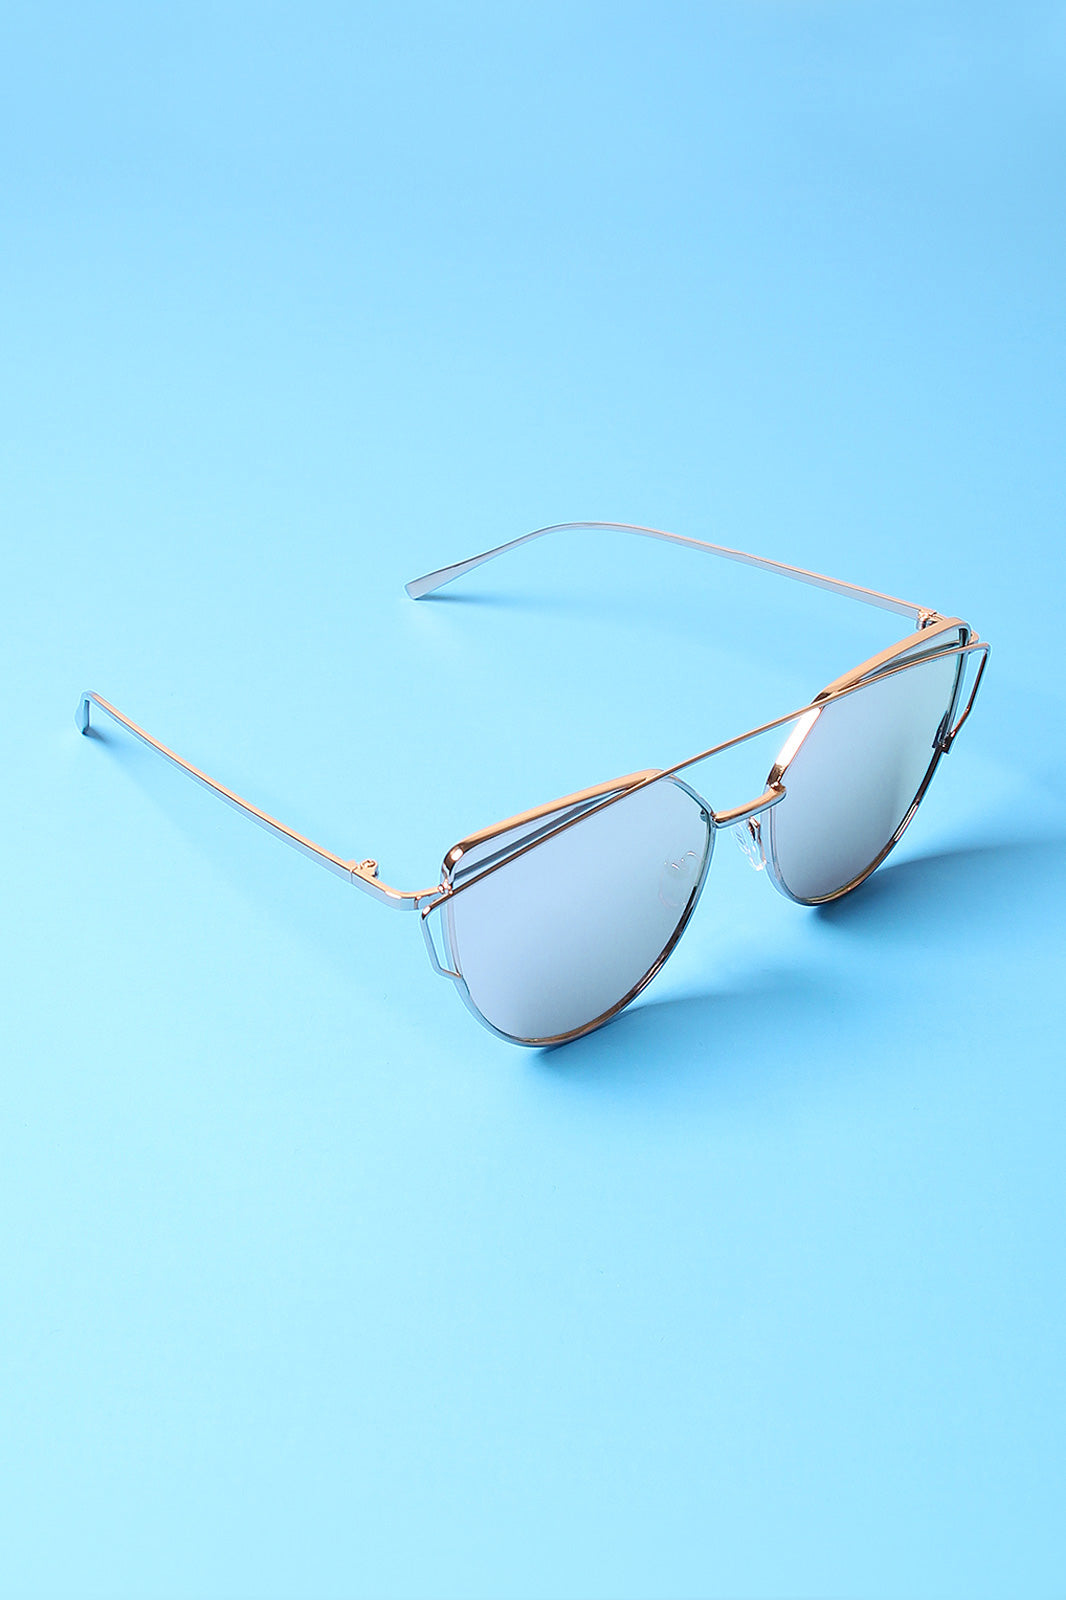 Wired Cateye Brow-Bar Aviator Sunglasses